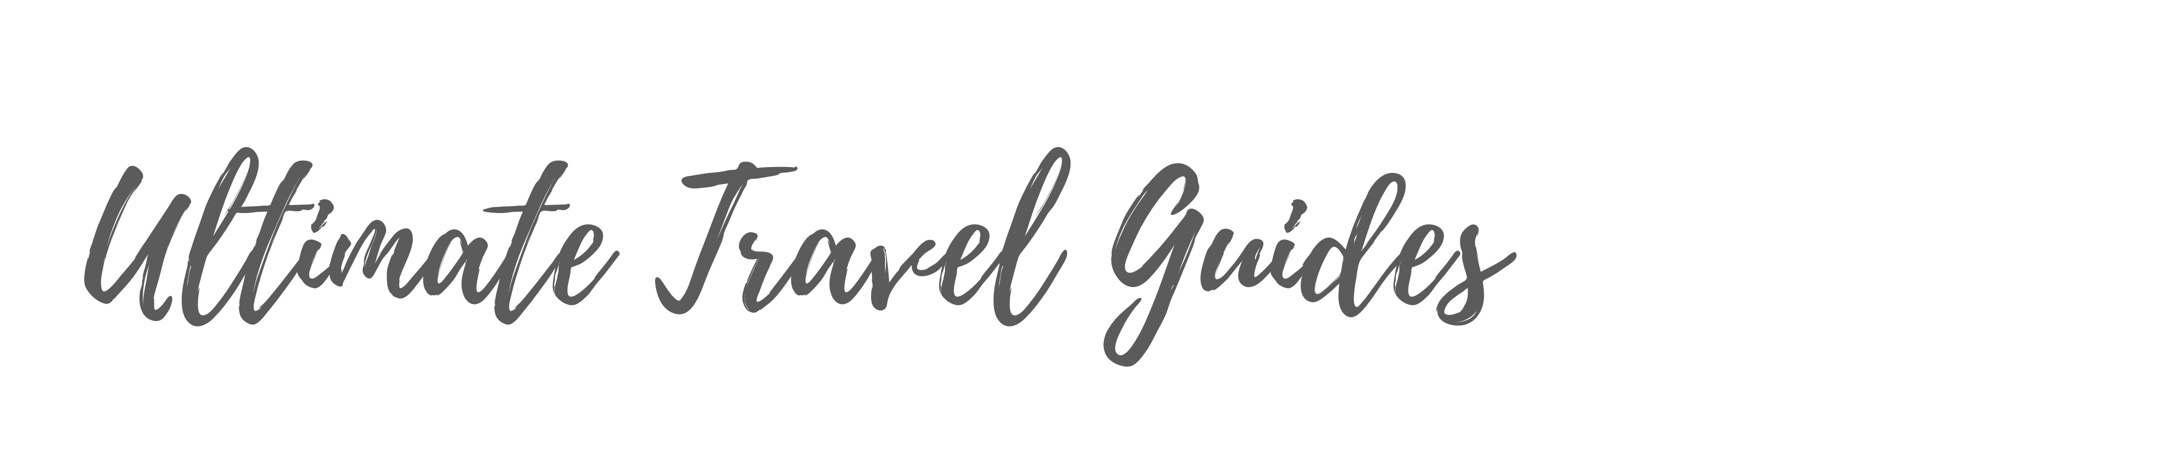 Ultimate Travel Guides